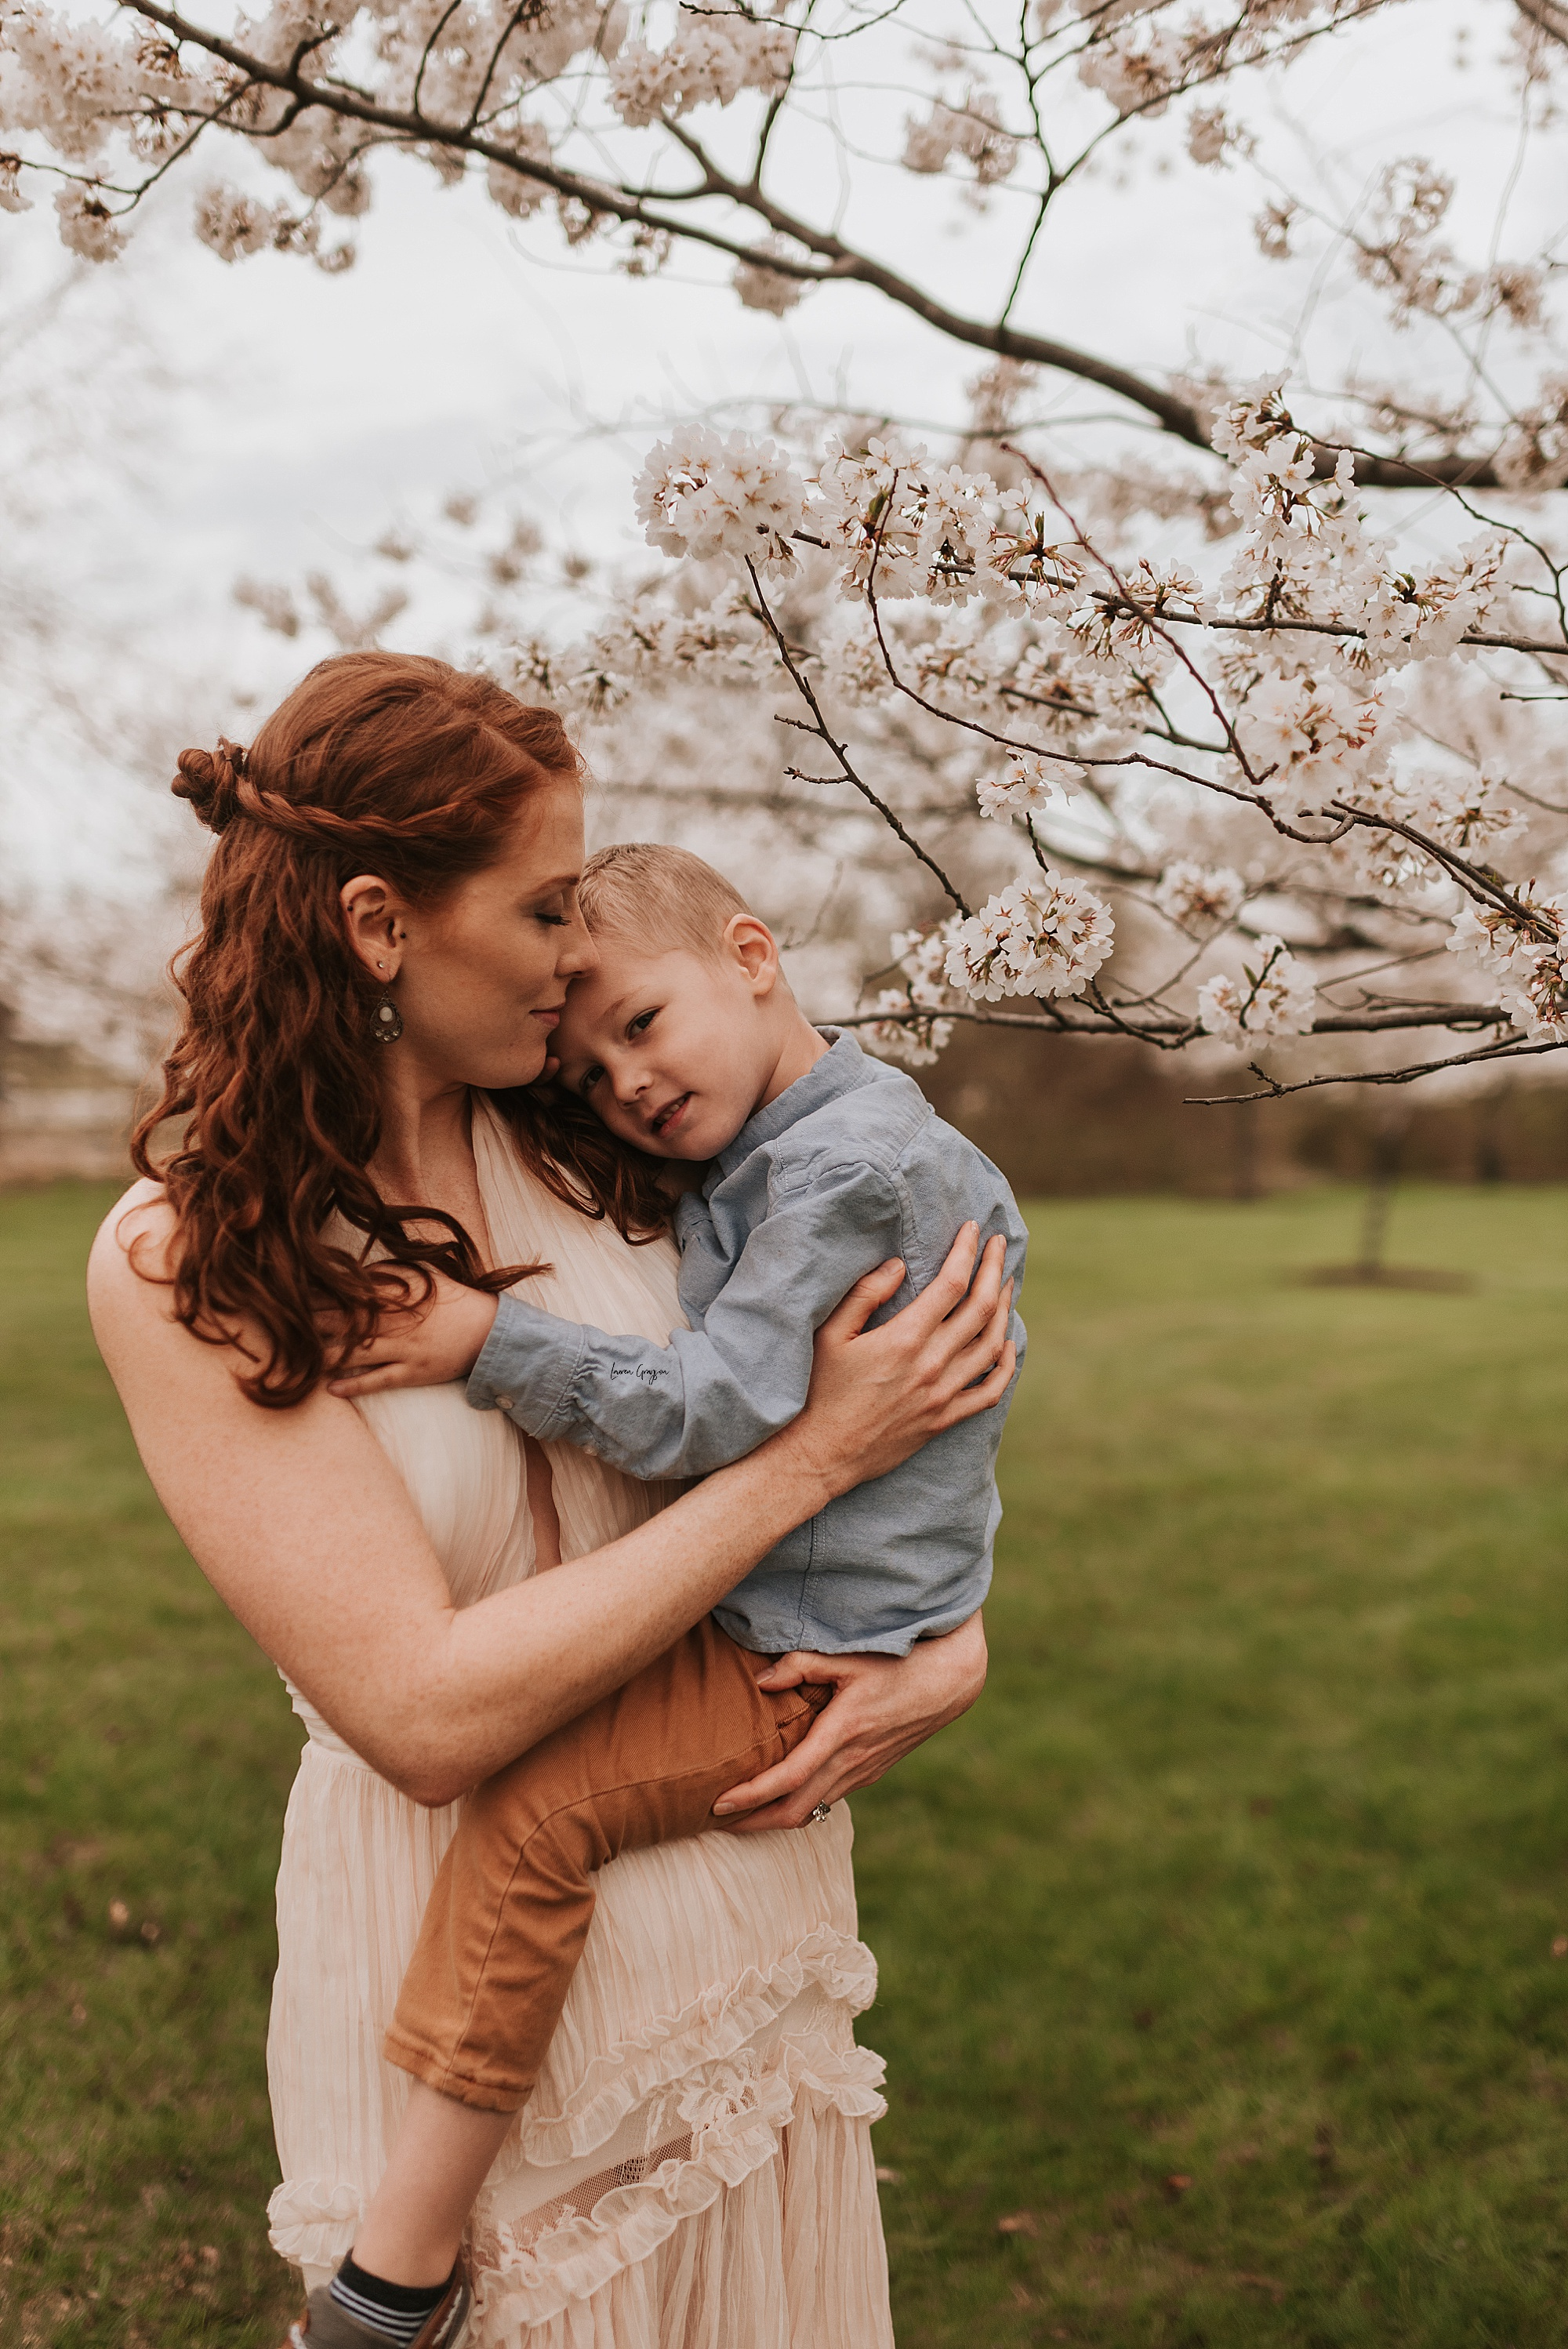 lauren-grayson-photography-cleveland-ohio-motherhood-family-child-photo-session-cherry-blossoms_0015.jpg